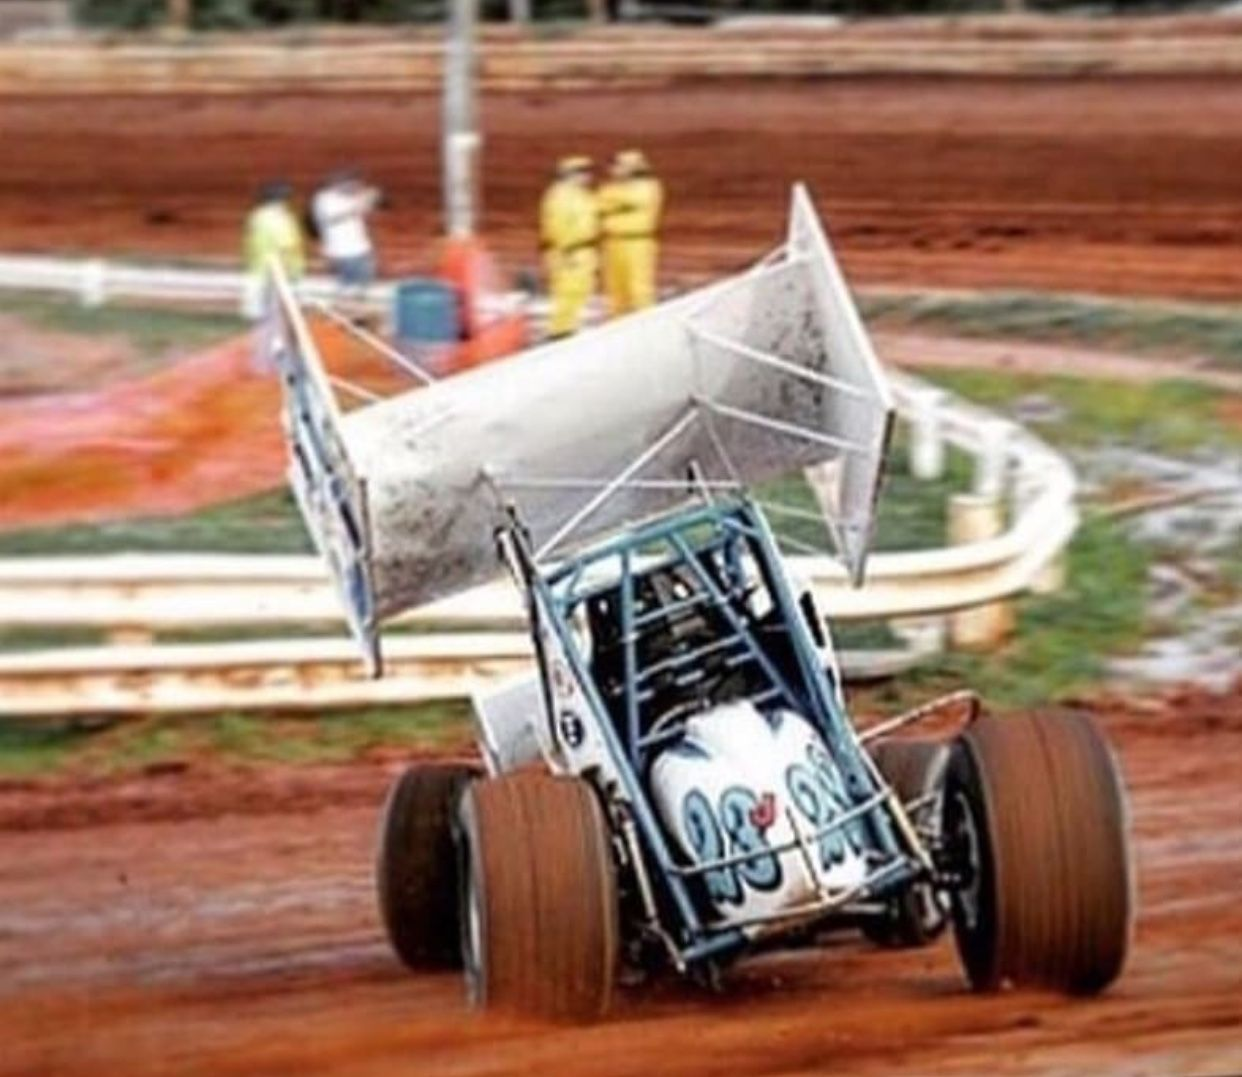 Dirt track racing Sports Auto racing Auto racing in 2020